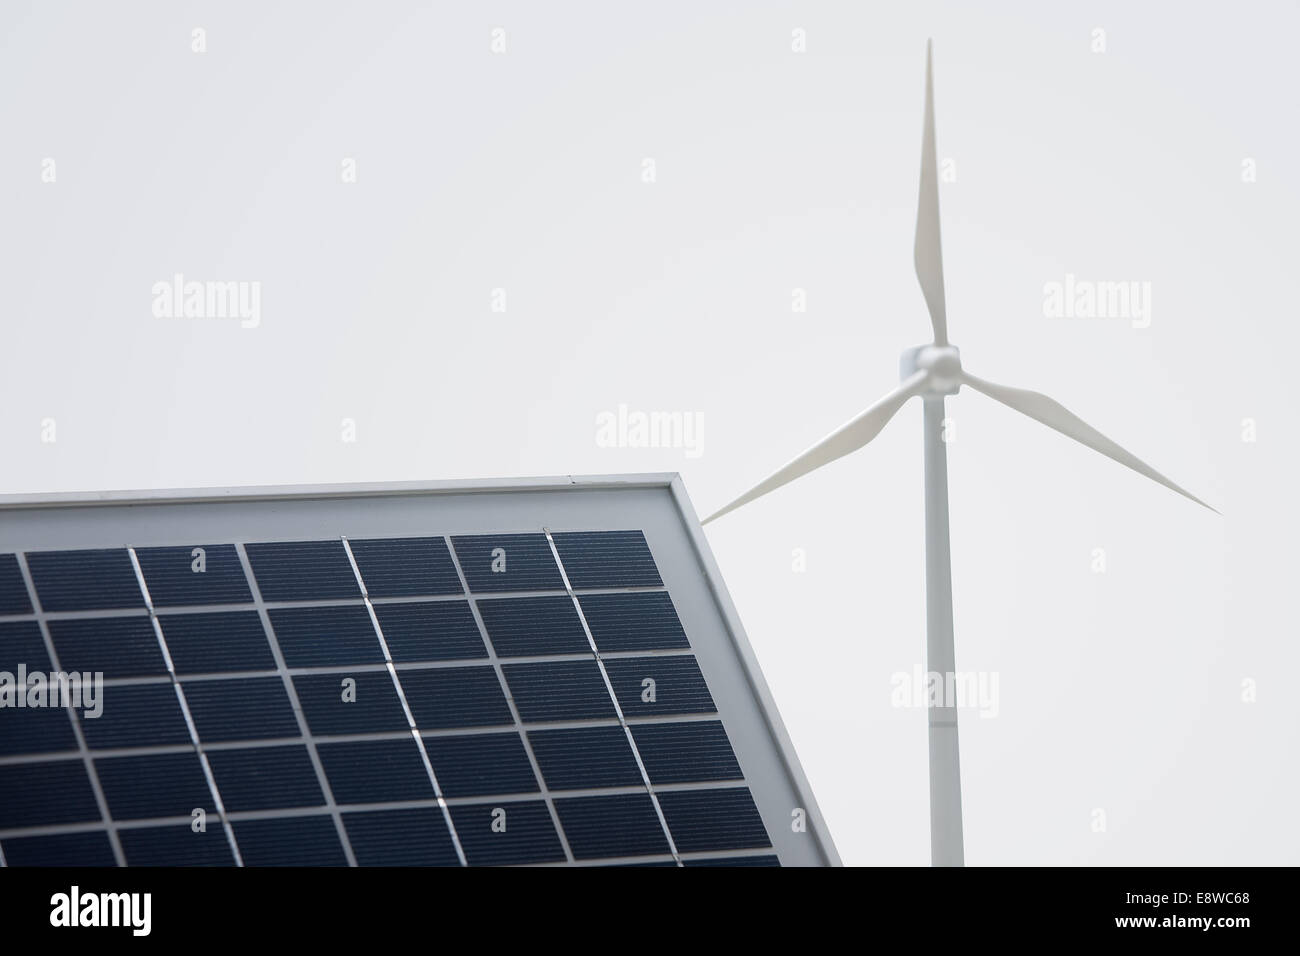 Energy saving light bulb solar panels Stock Photo: 74317104 - Alamy